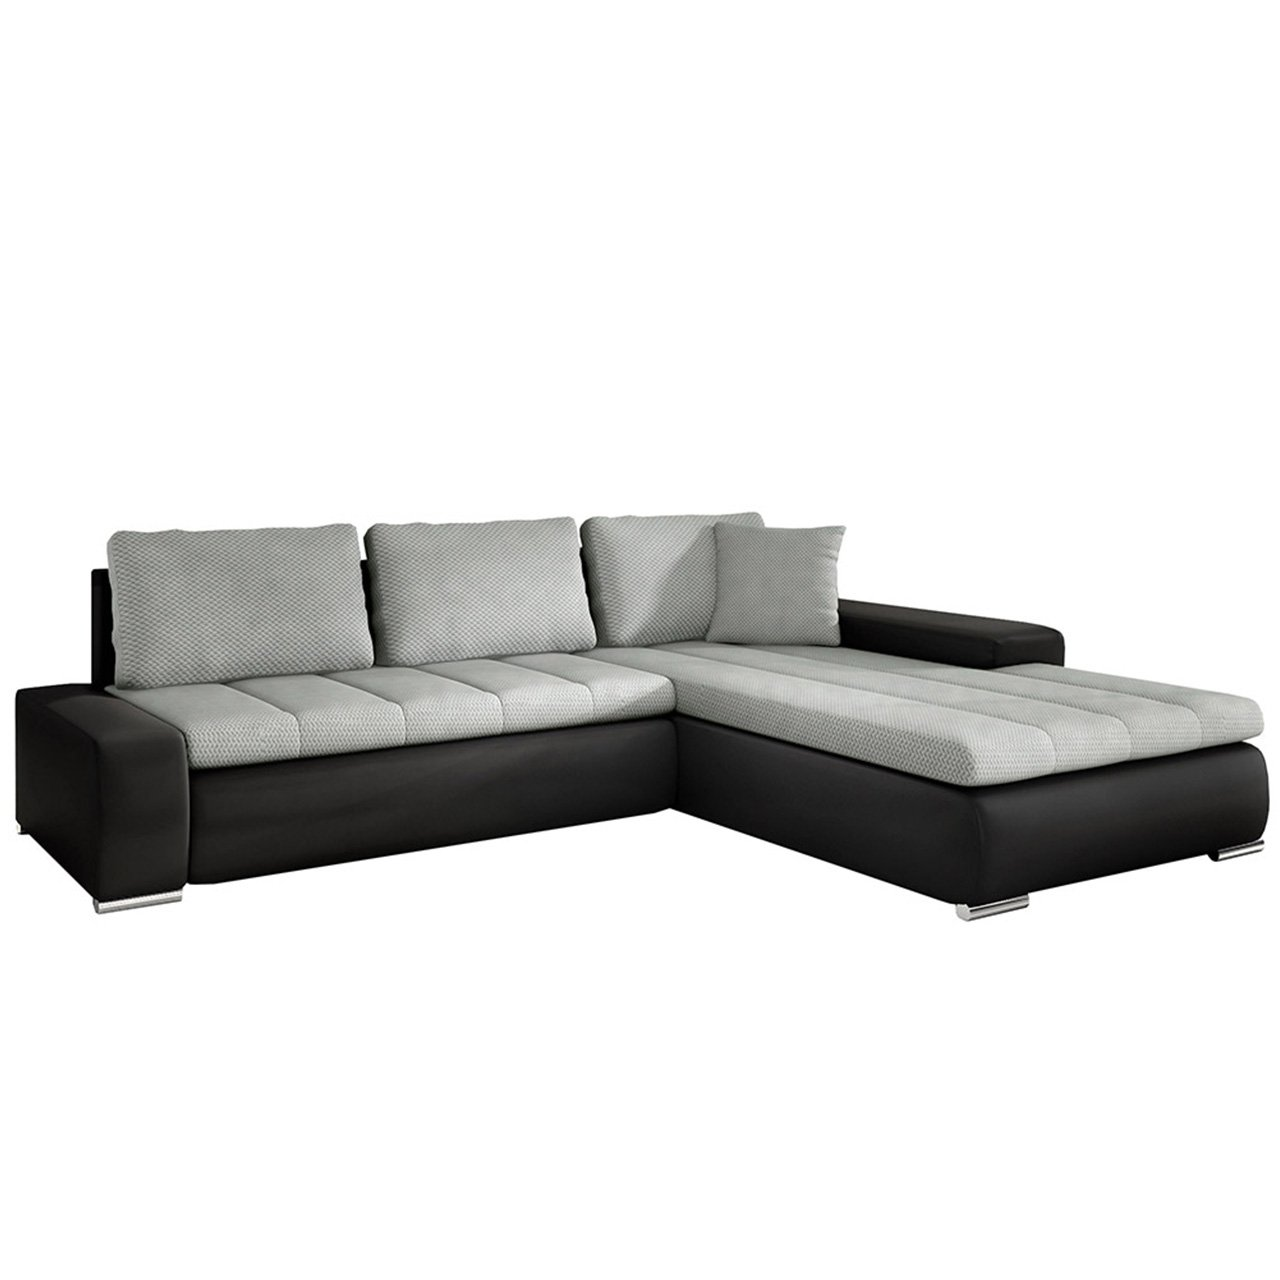 Eckcouch ecksofa orkan smart elegante sofa mit for Couch mit bettfunktion und bettkasten